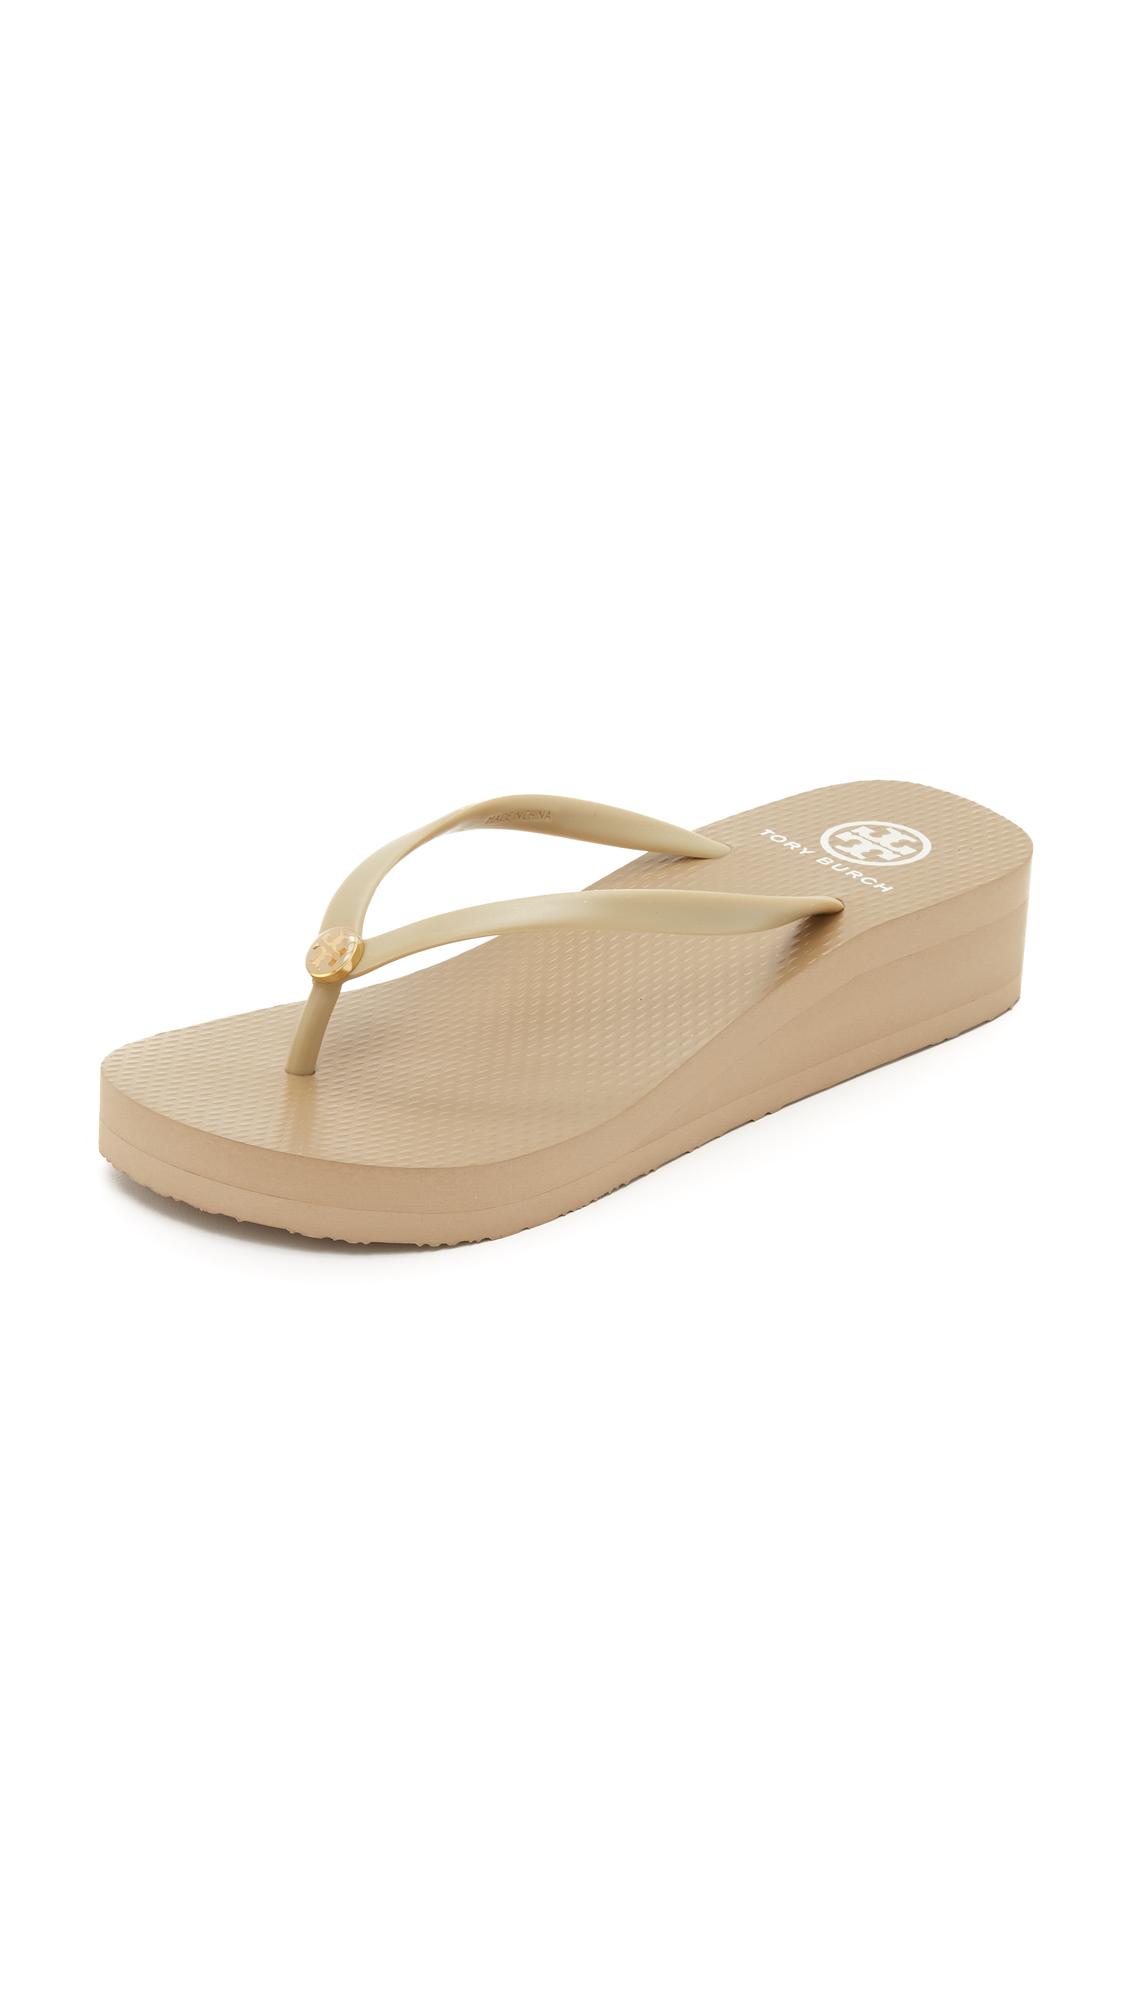 65464bec6e22 Tory Burch Cutout Wedge Flip Flops